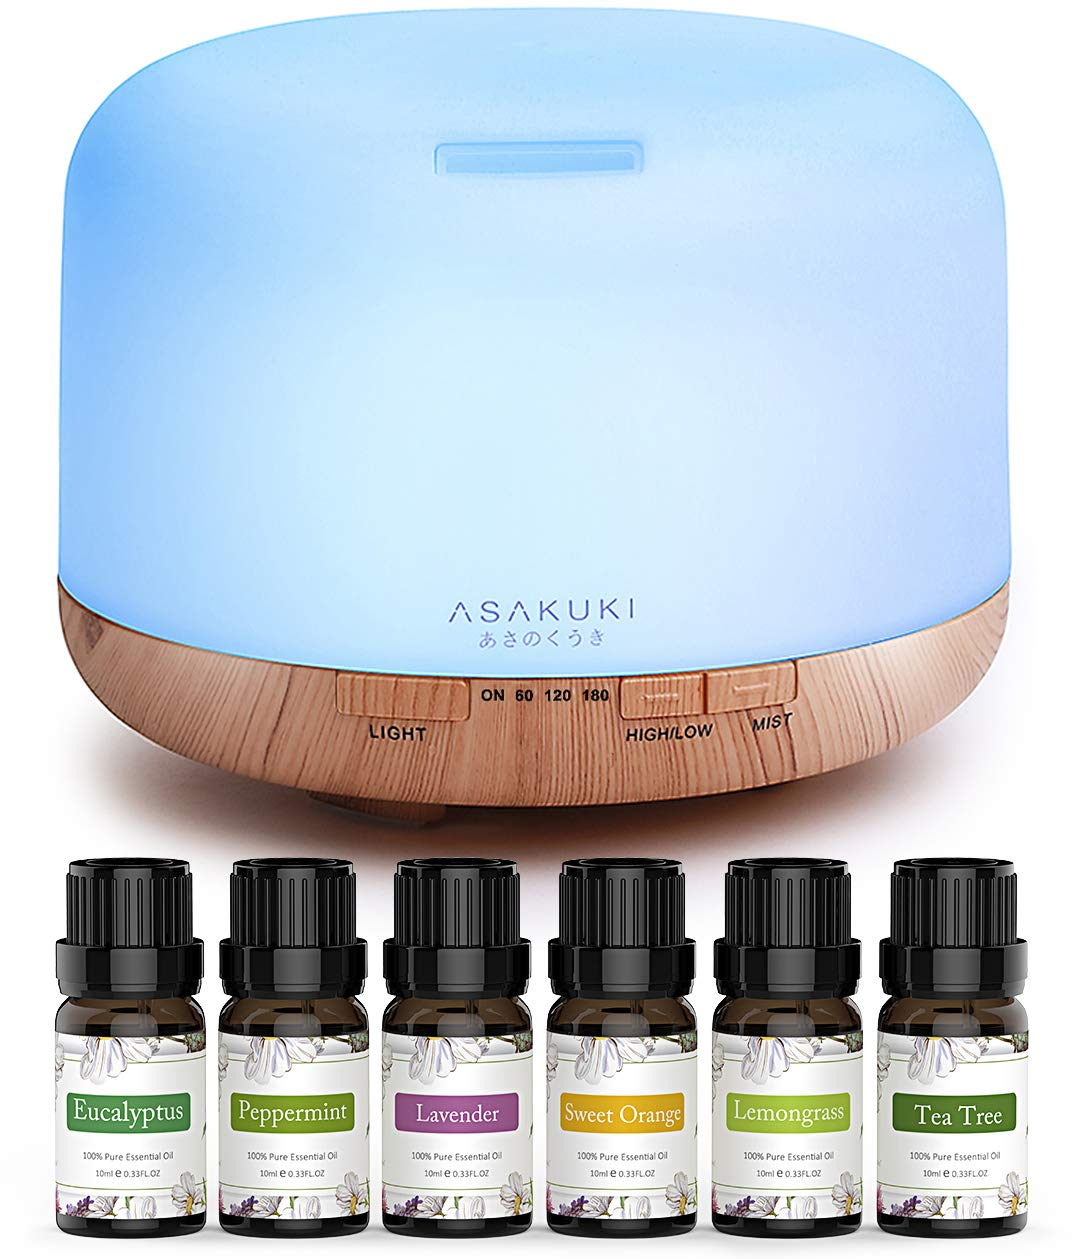 ASAKUKI Essential Oil Diffuser with Essential Oils Set, 500ml Aromatherapy Diffuser with Top 6 100% Pure Natural Essential Oils, 14 LED Colors and Auto Shut-Off